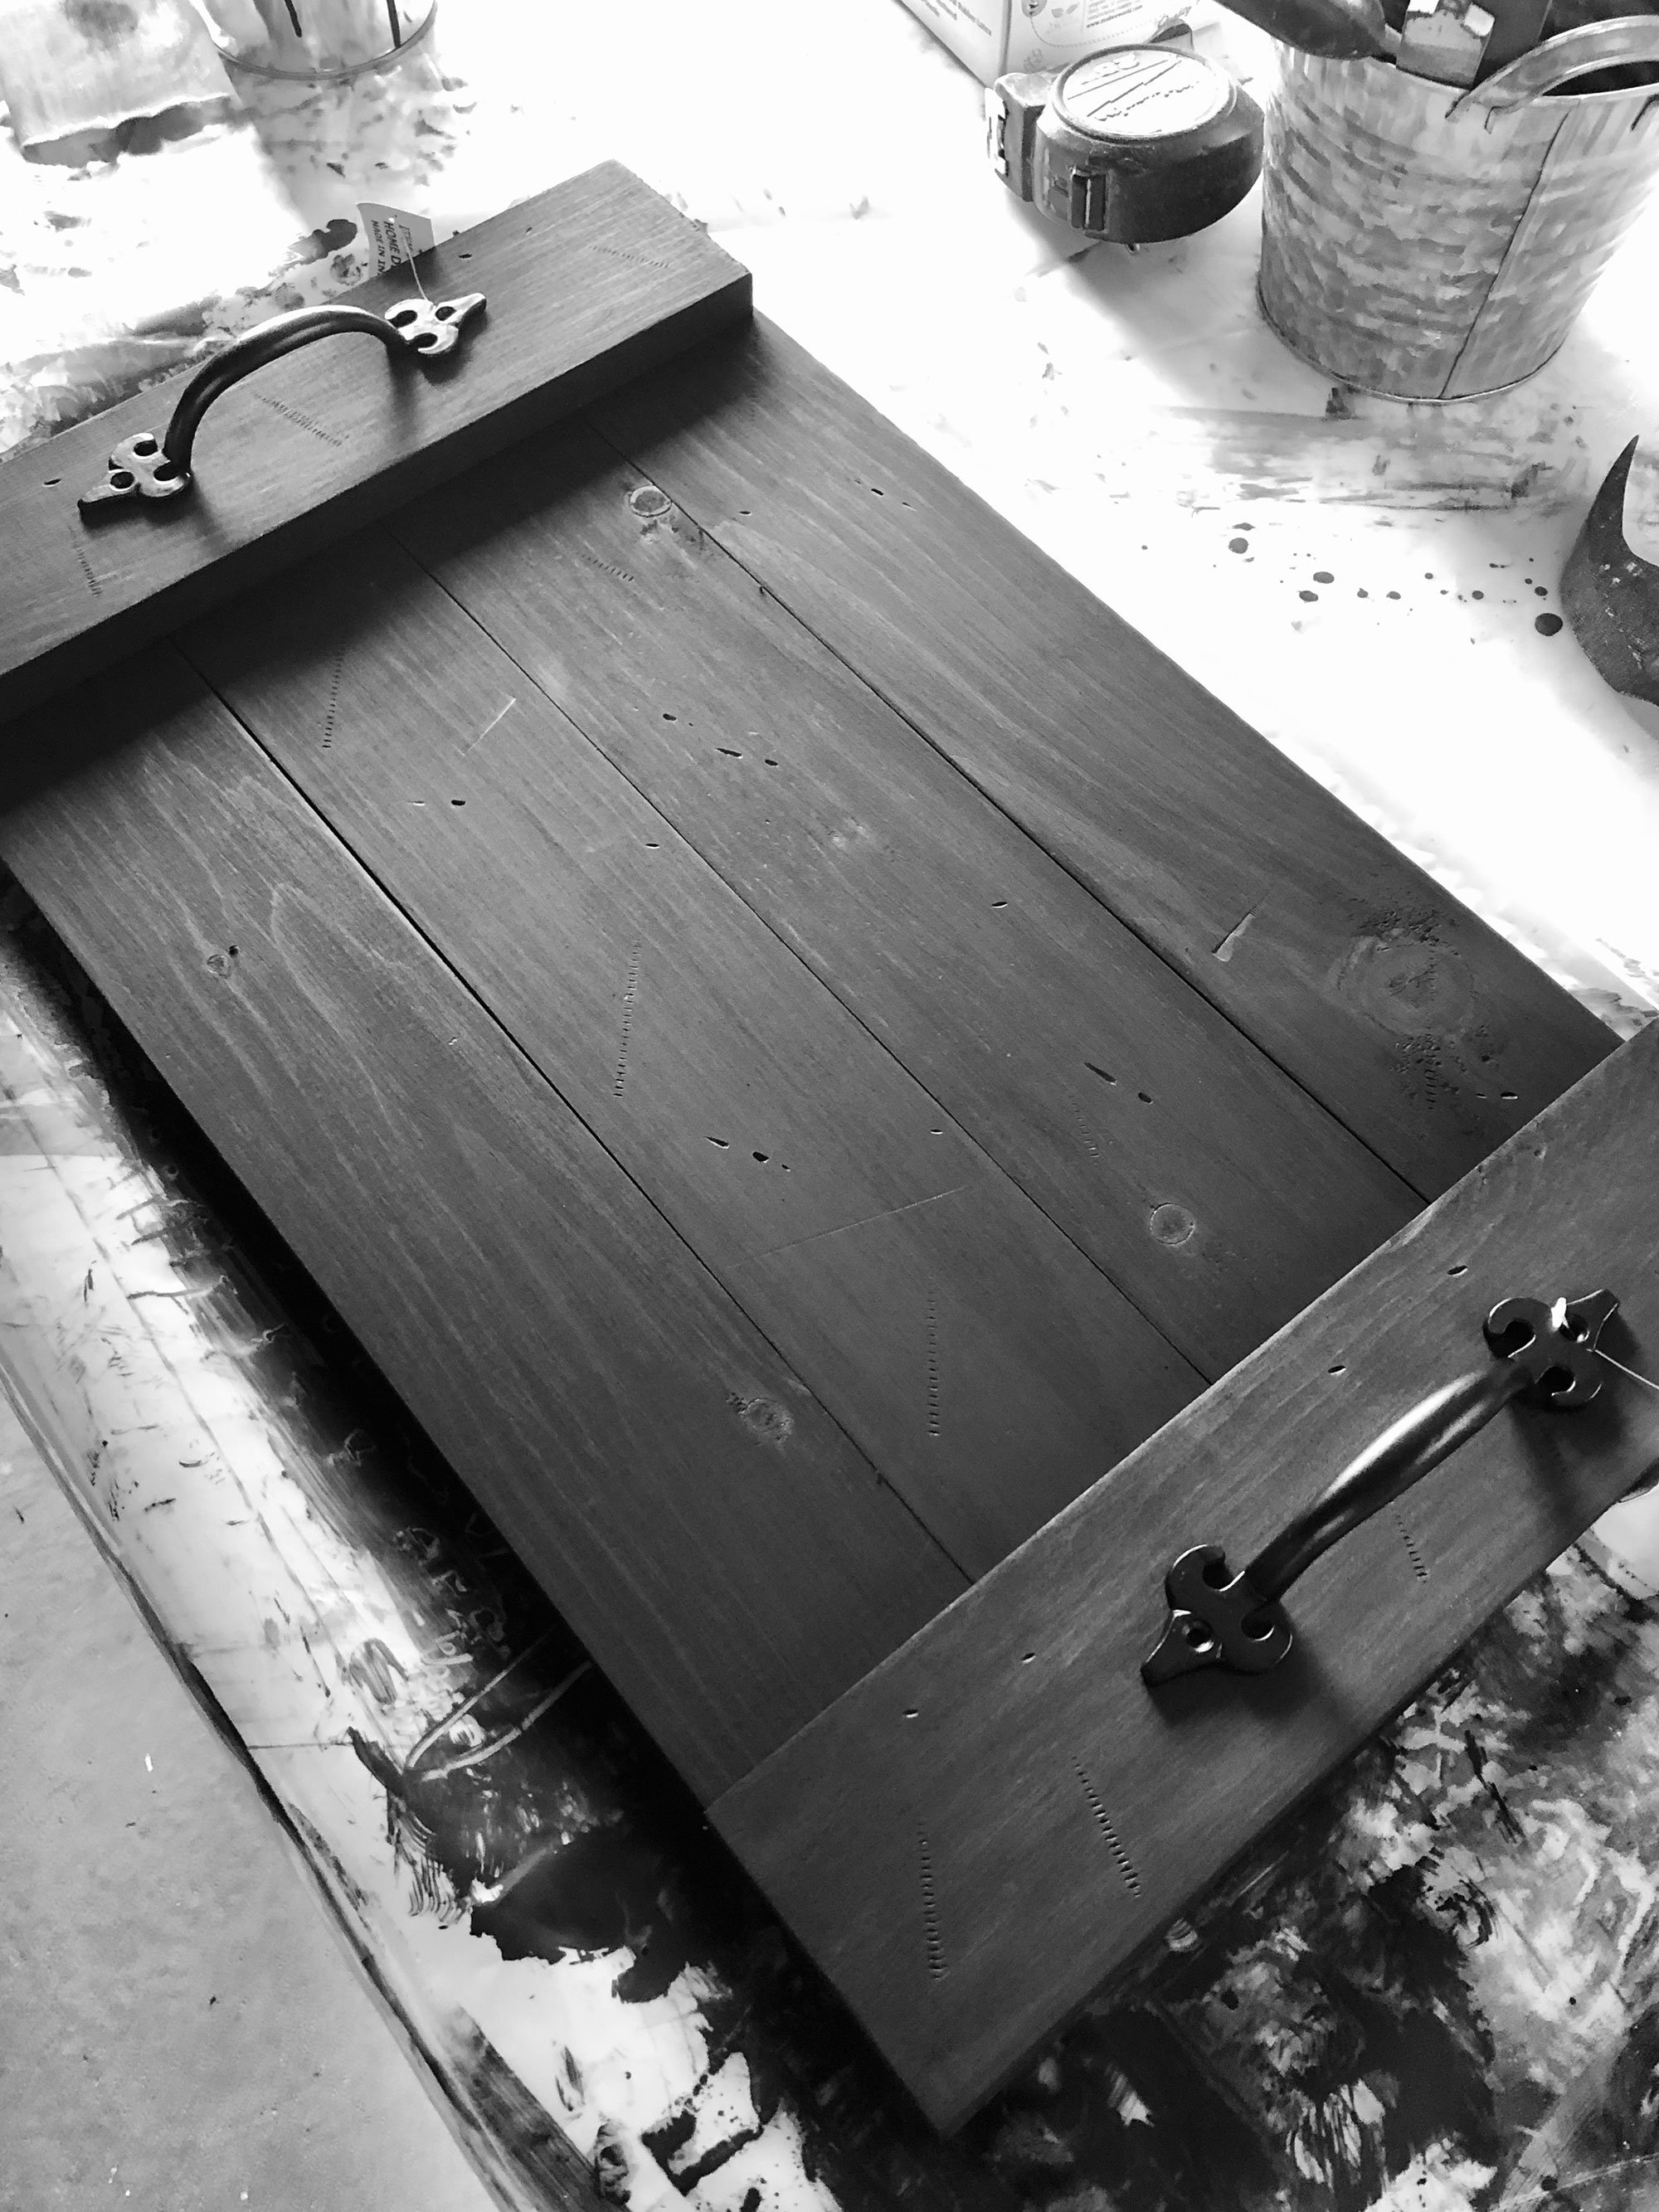 Stained wood tray at DIY workshop studio